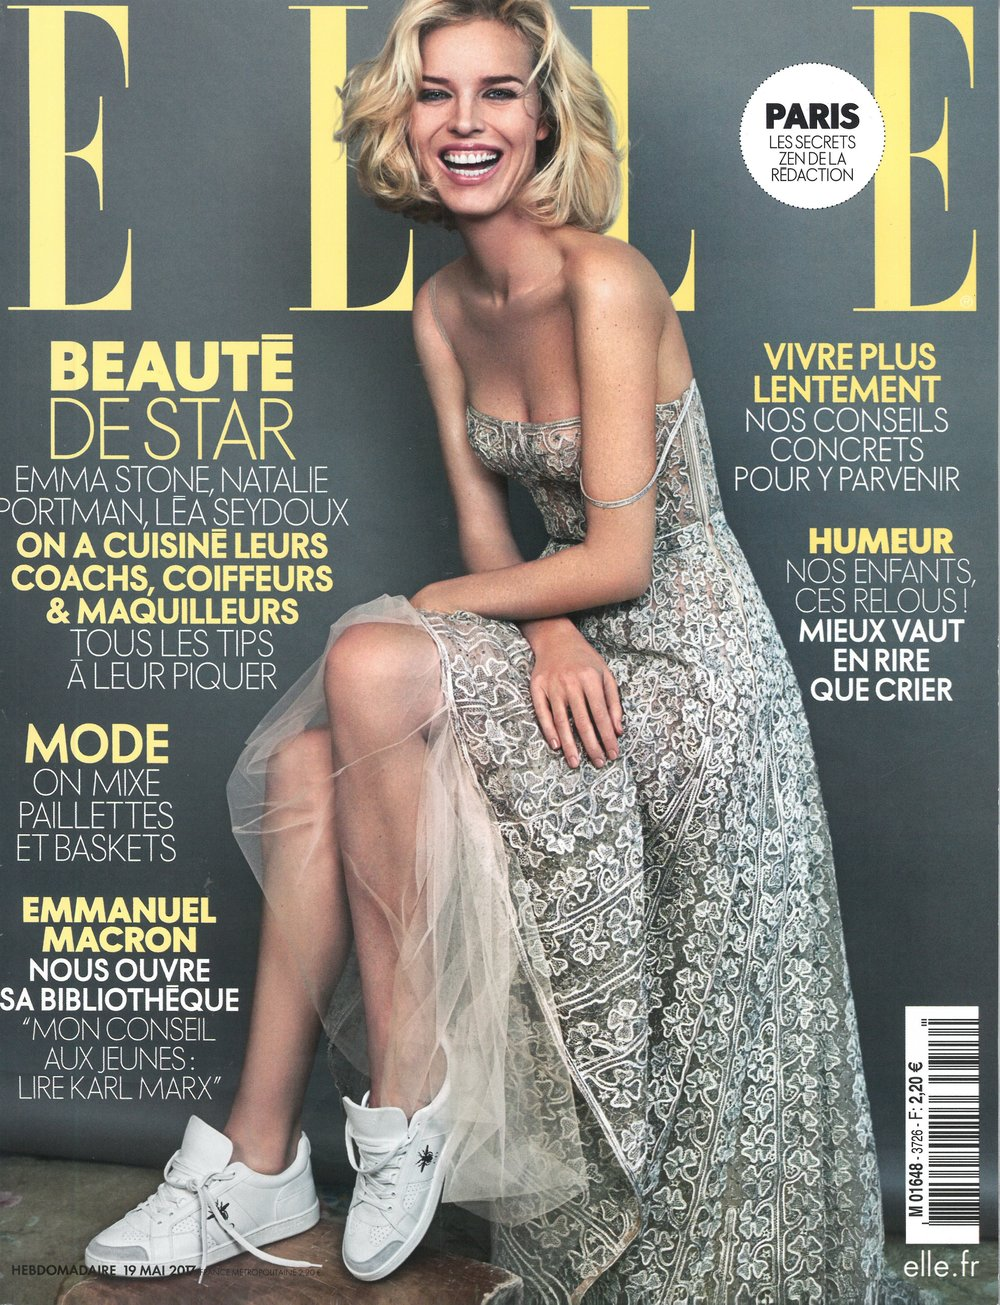 Elle France, May 18th, Cover.jpg